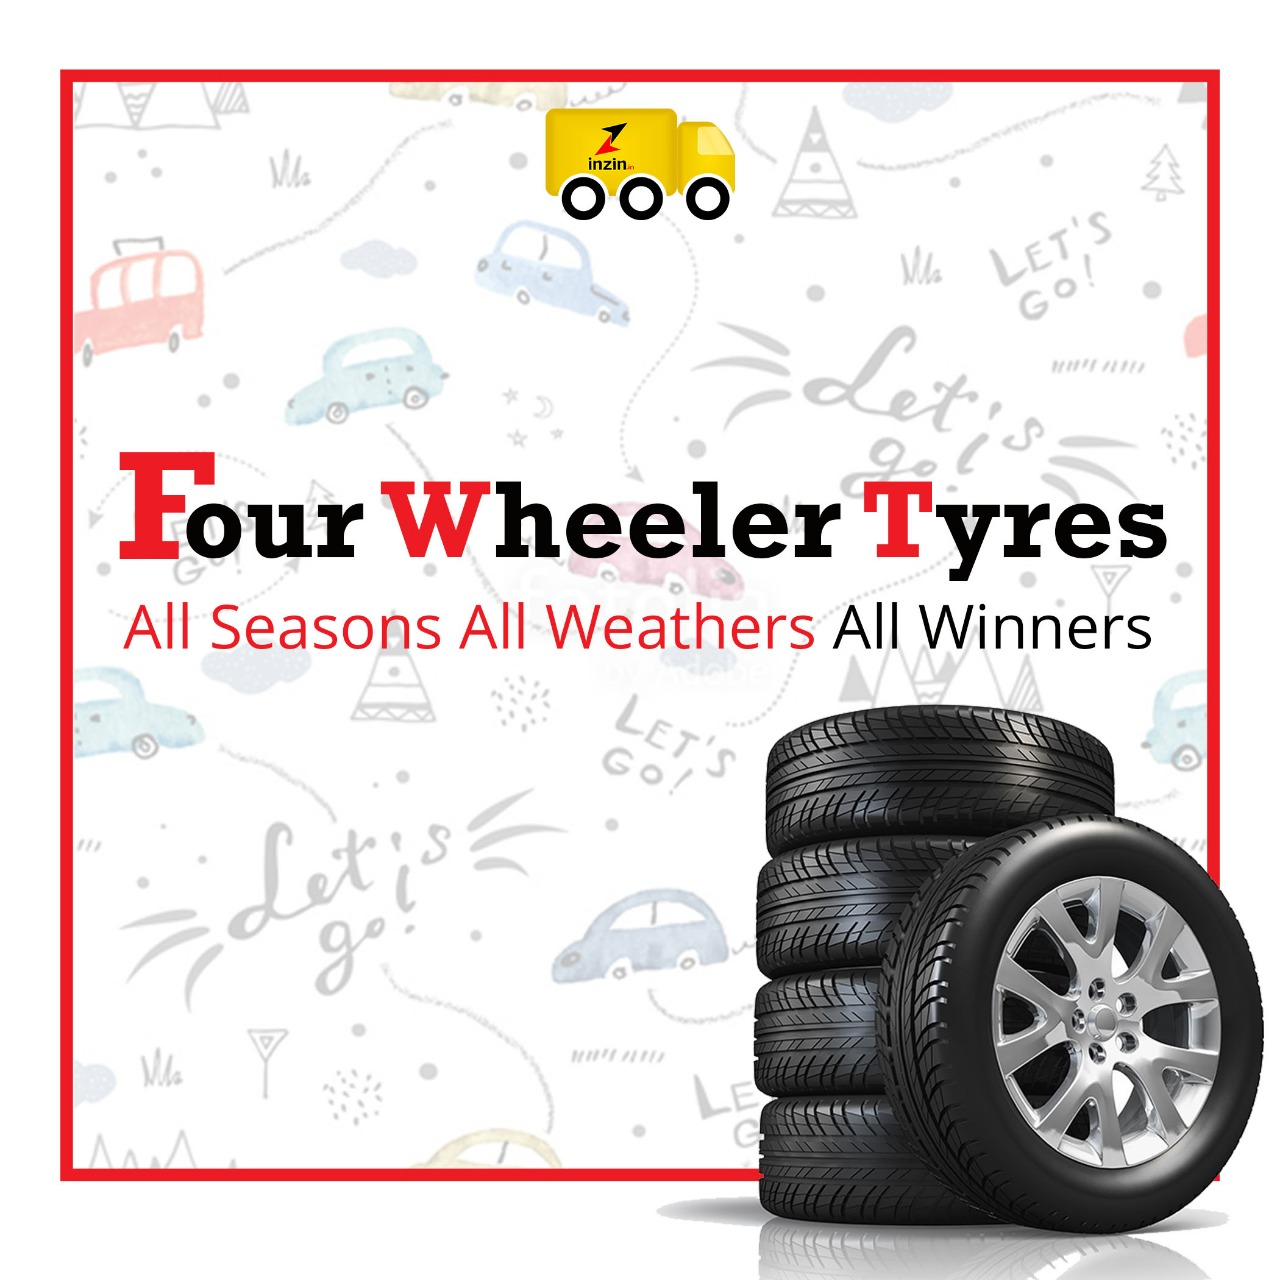 Four Wheeler Tyre manufacturers